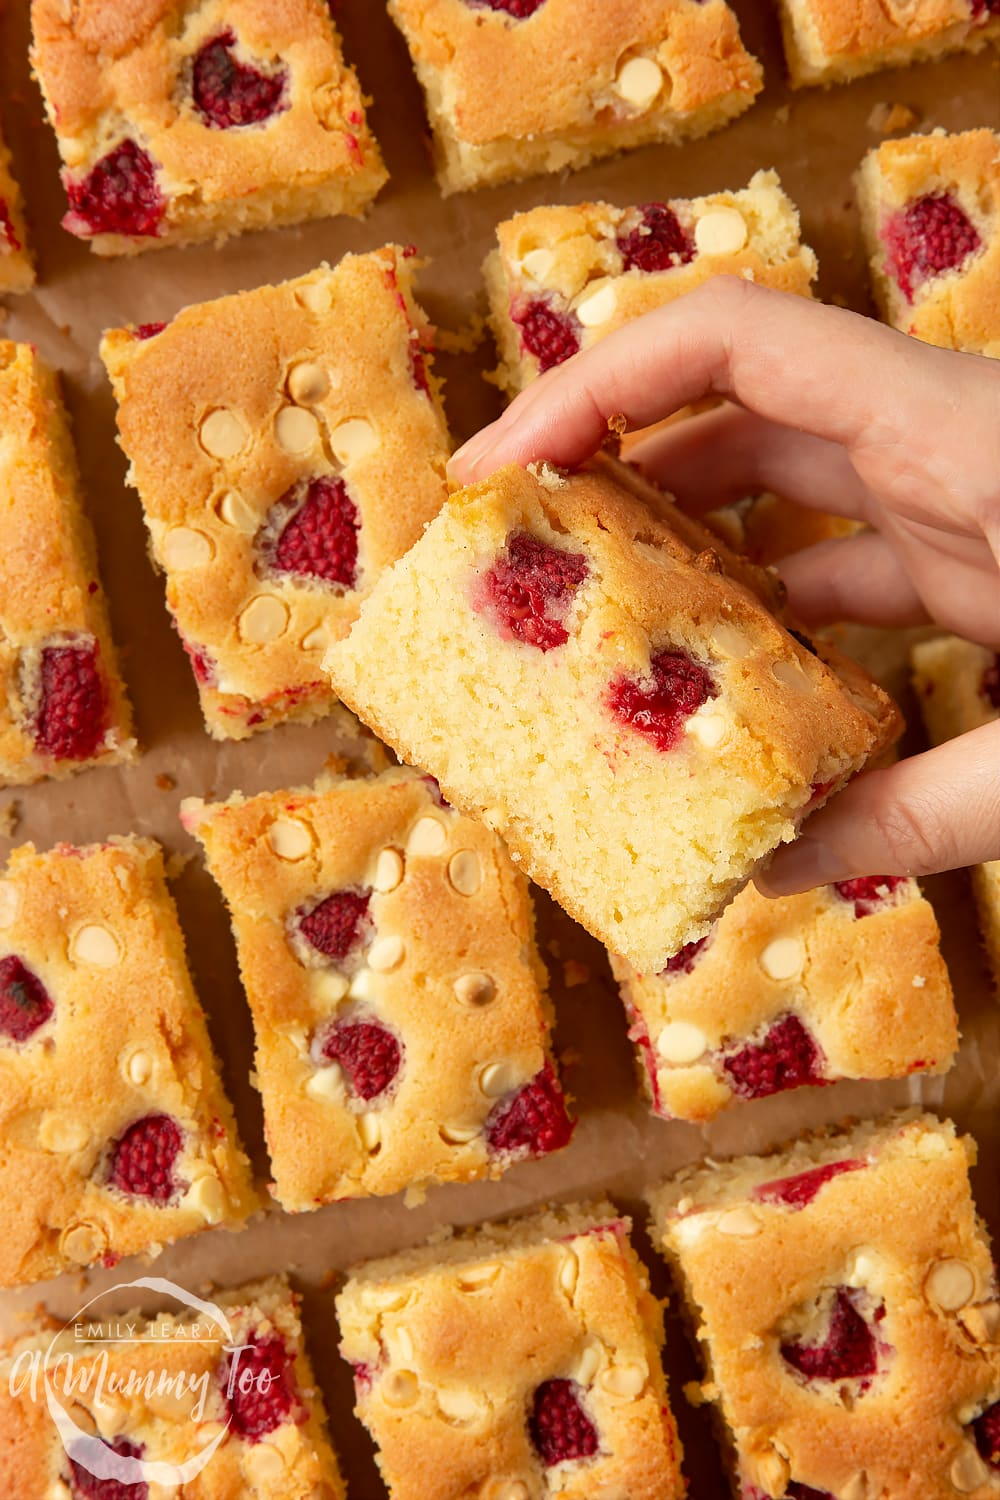 A slice of baked raspberry and white chocolate traybake